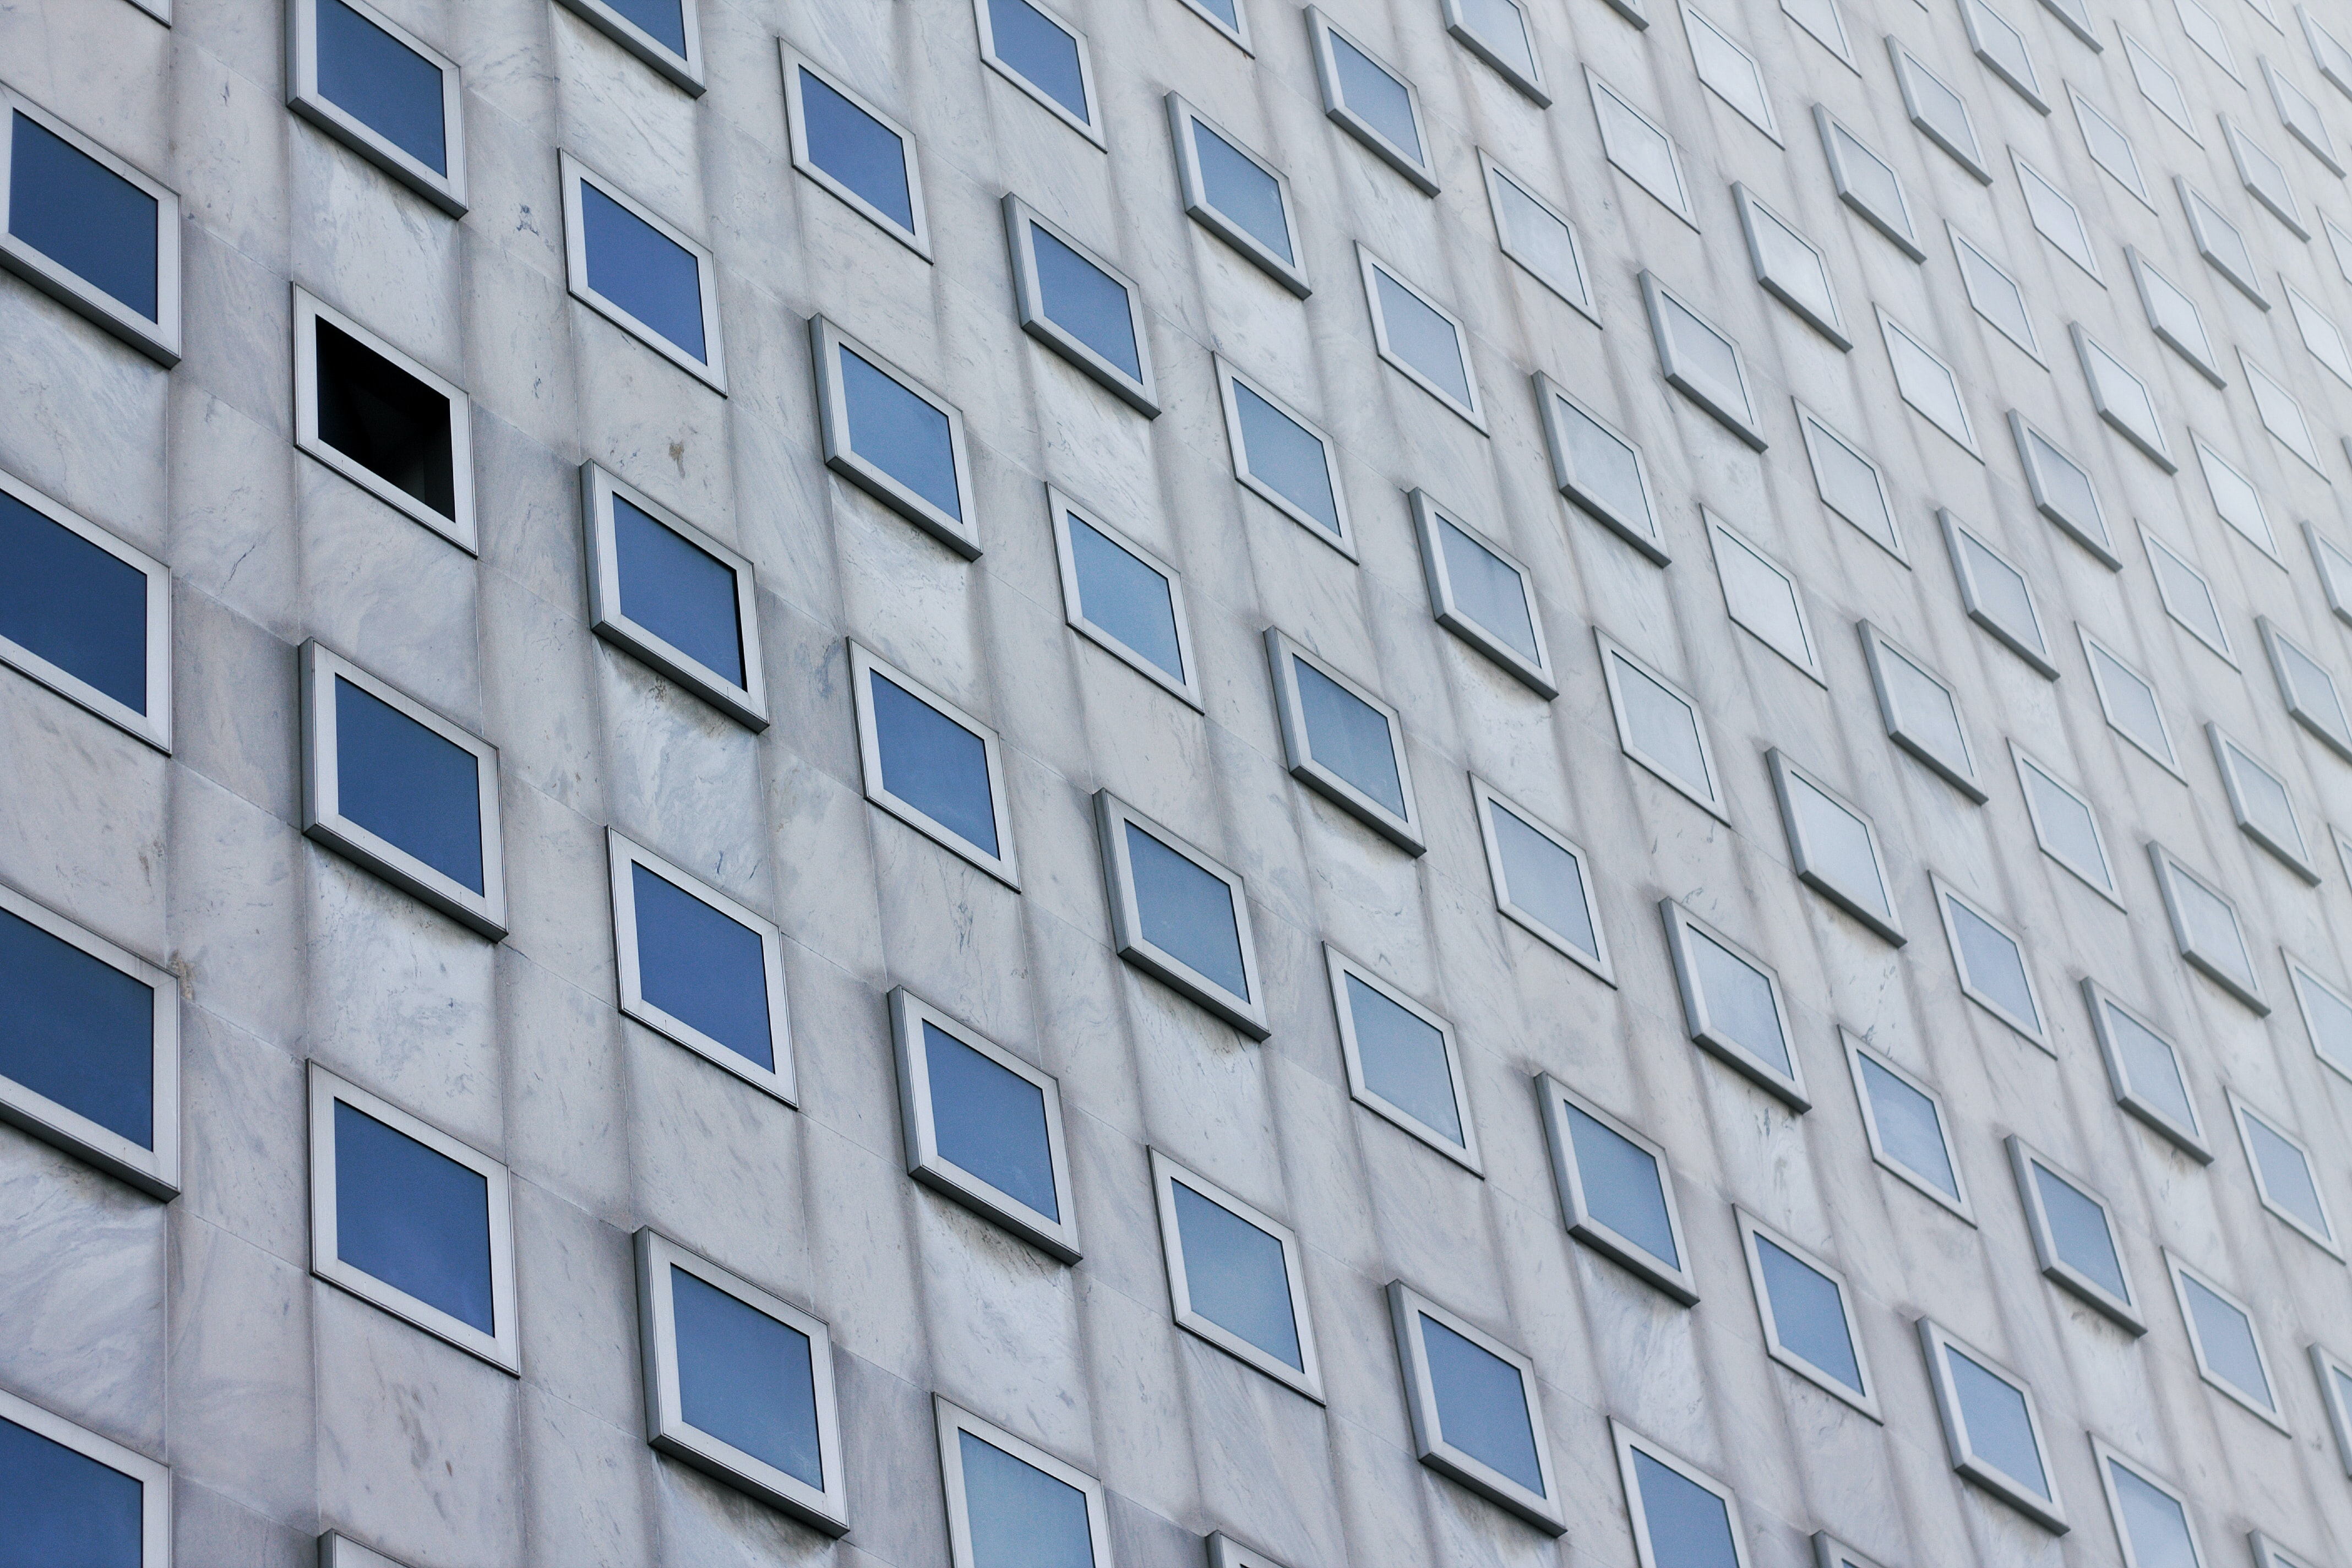 photo of gray concrete building with clear glass windows at daytime